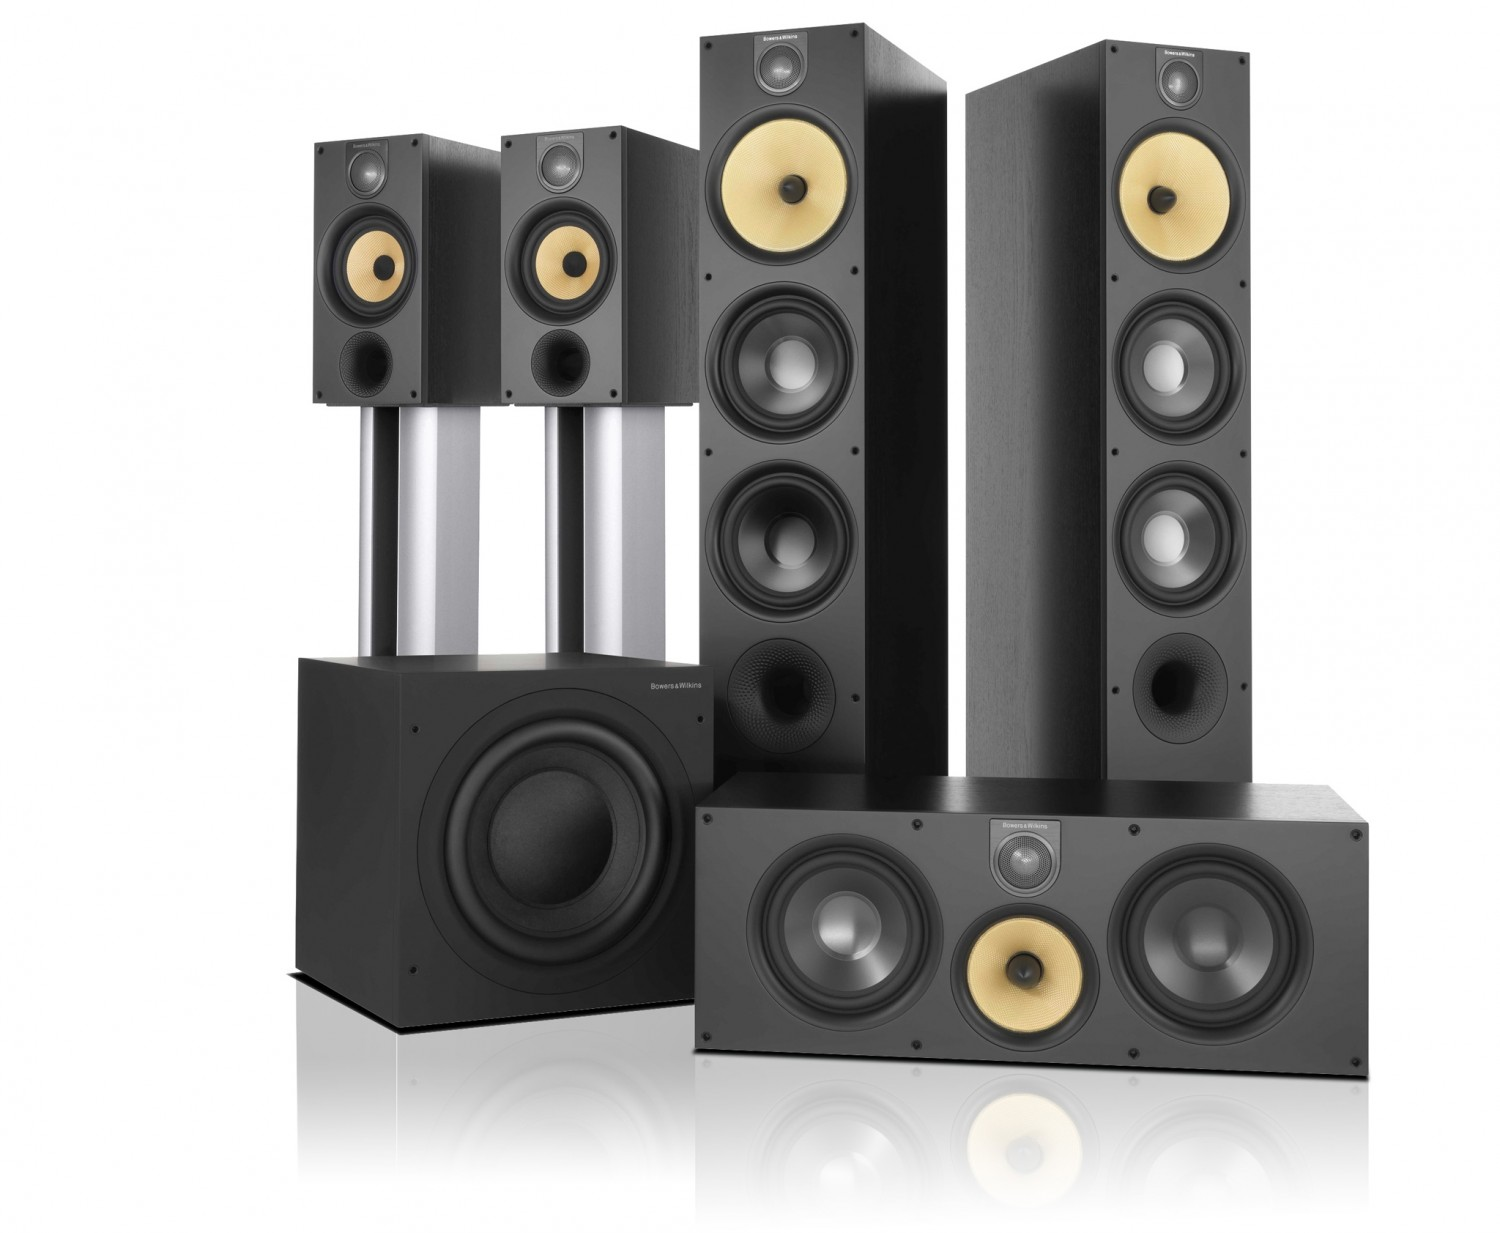 test lautsprecher surround b w bowers wilkins 600er. Black Bedroom Furniture Sets. Home Design Ideas